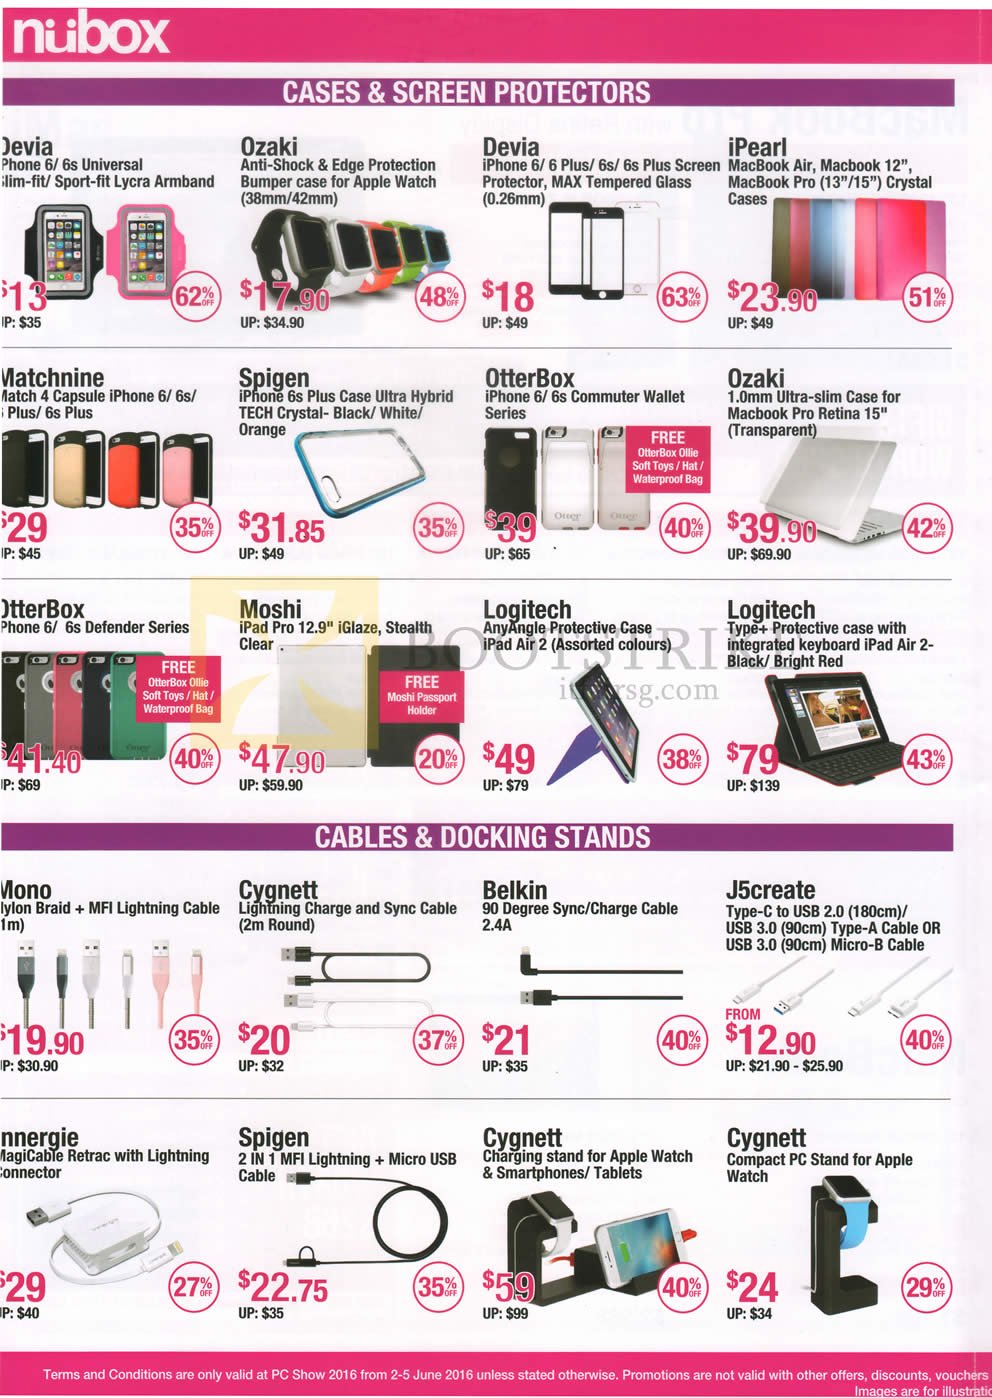 PC SHOW 2016 price list image brochure of Nubox Accessories Armbands, Apple Watch Cases, IPhone Screen Protectors, Macbook Cases, IPhone Cases, Cables, USB Adaptors, Charging Stands, Apple Watch PC Stand Devia